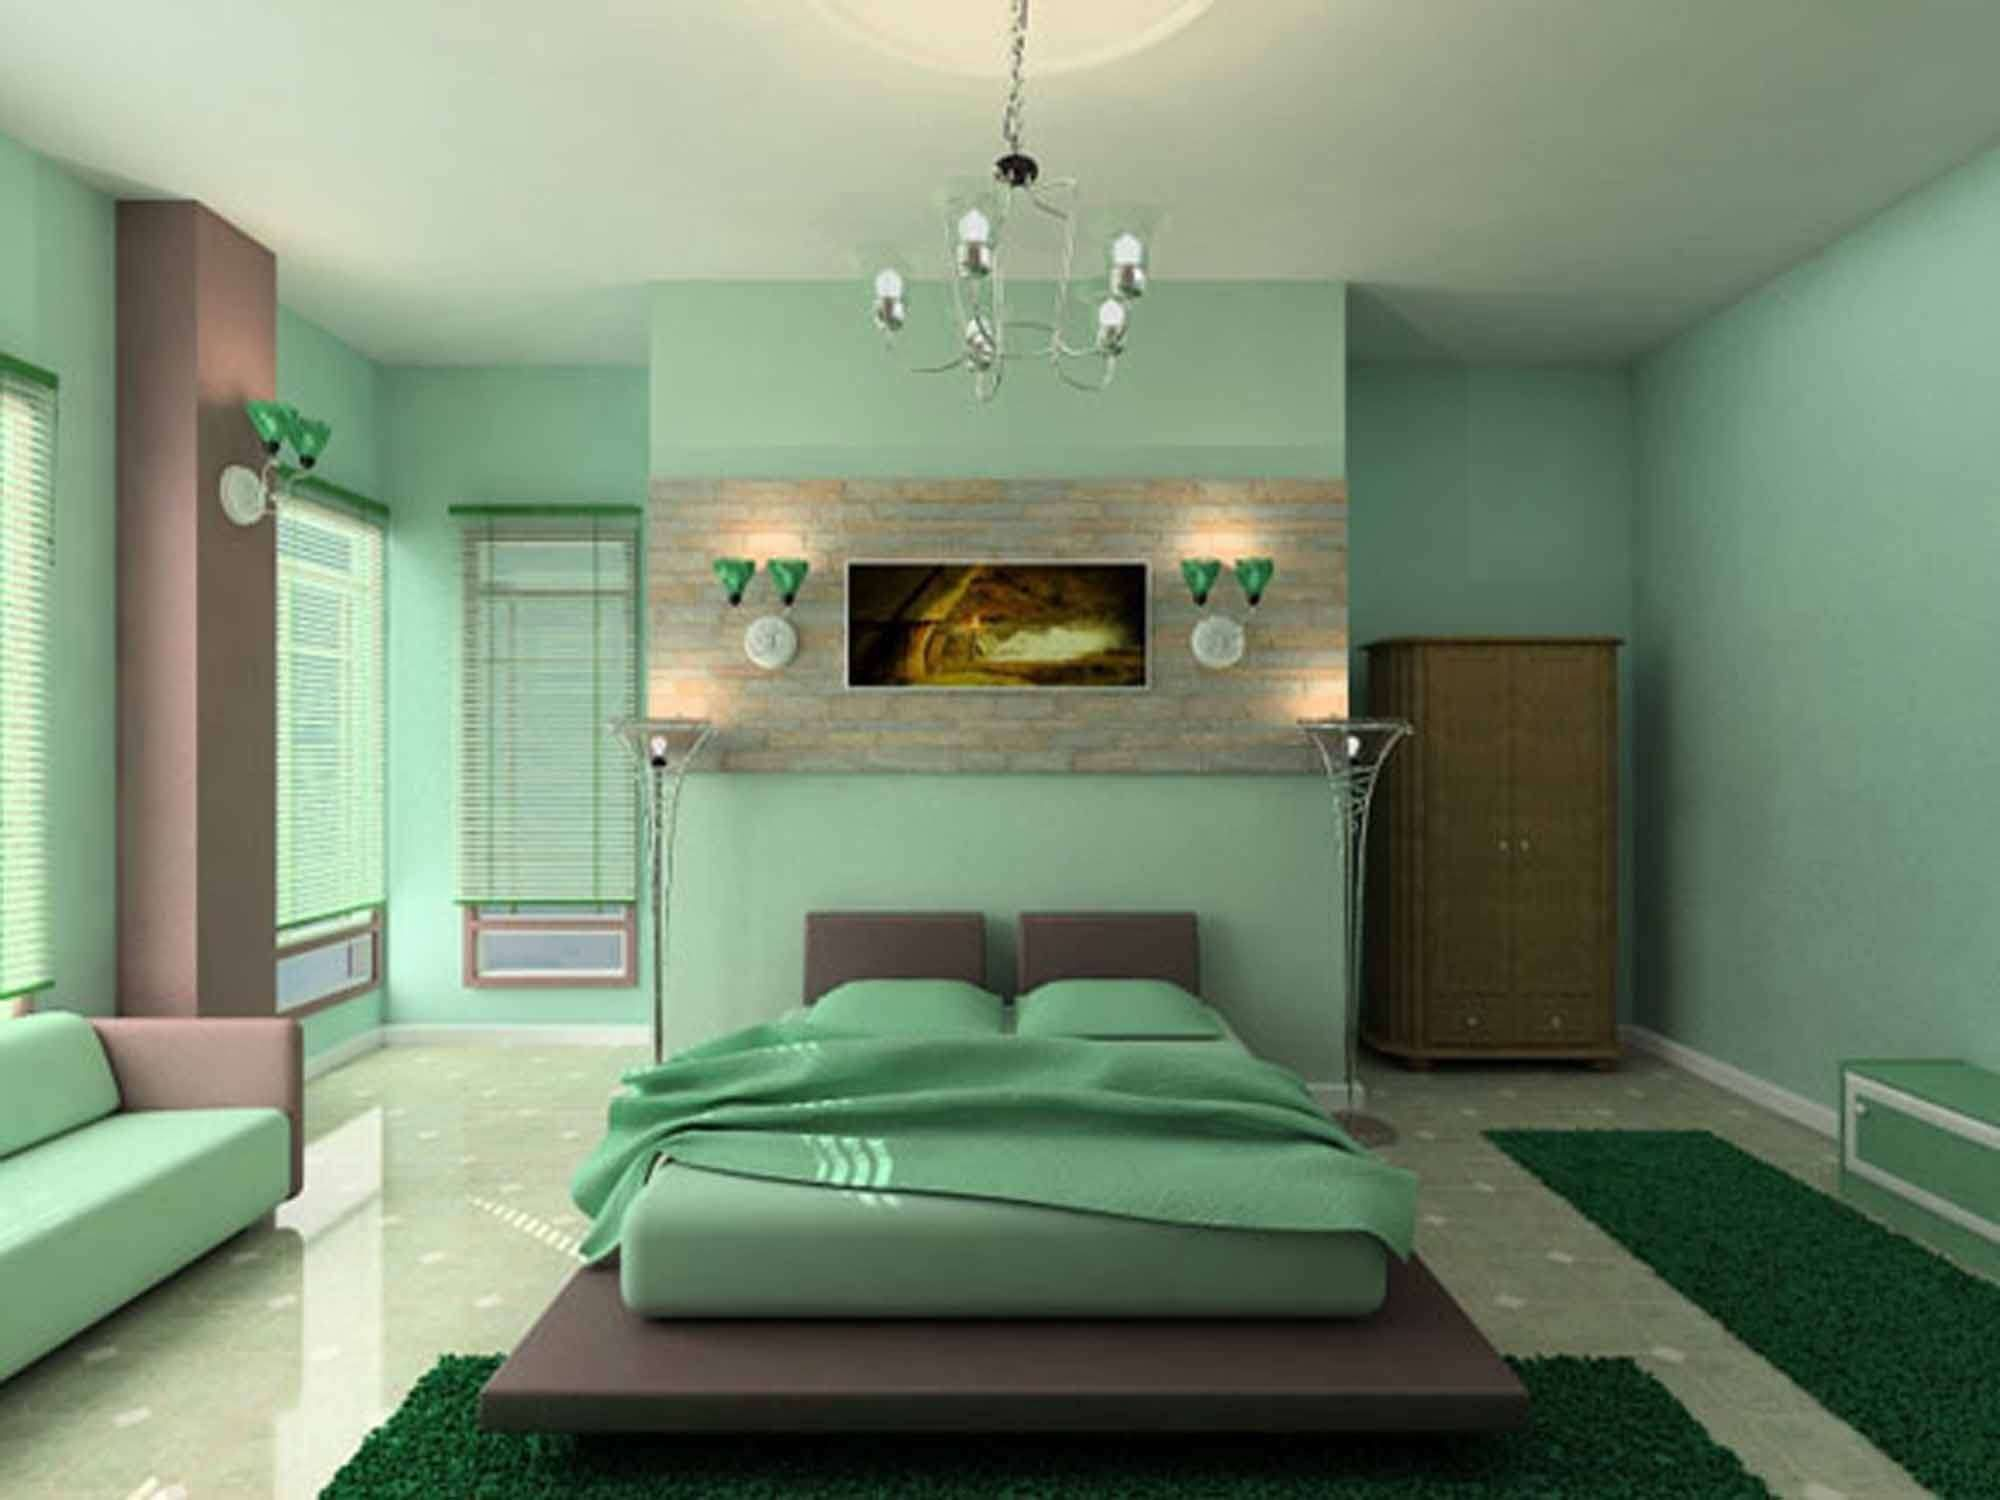 Light green bedroom paint colors - Exciting Darkslategray Accent Colors Green Kids Bedroom Paint Decorating Ideas Interior Painting Bright Bedrooms Picture Comfy Royal Chandeliers Design